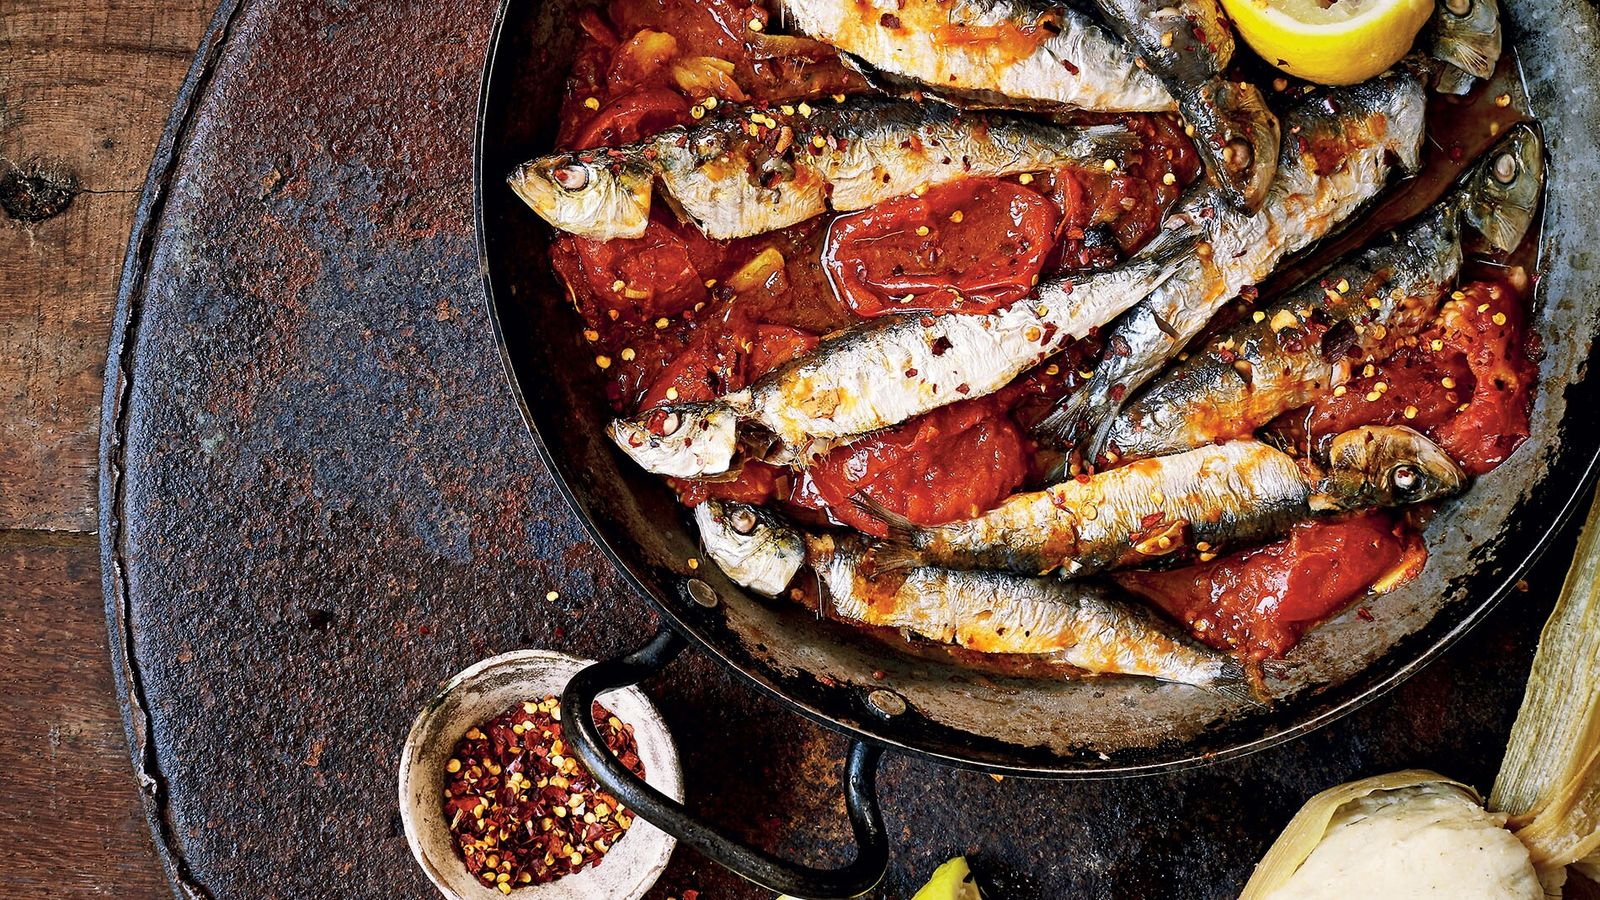 Grilled sardines with kenkey (fermented corn dumplings) is one of Zoe's most delicious Ghanian recipes.